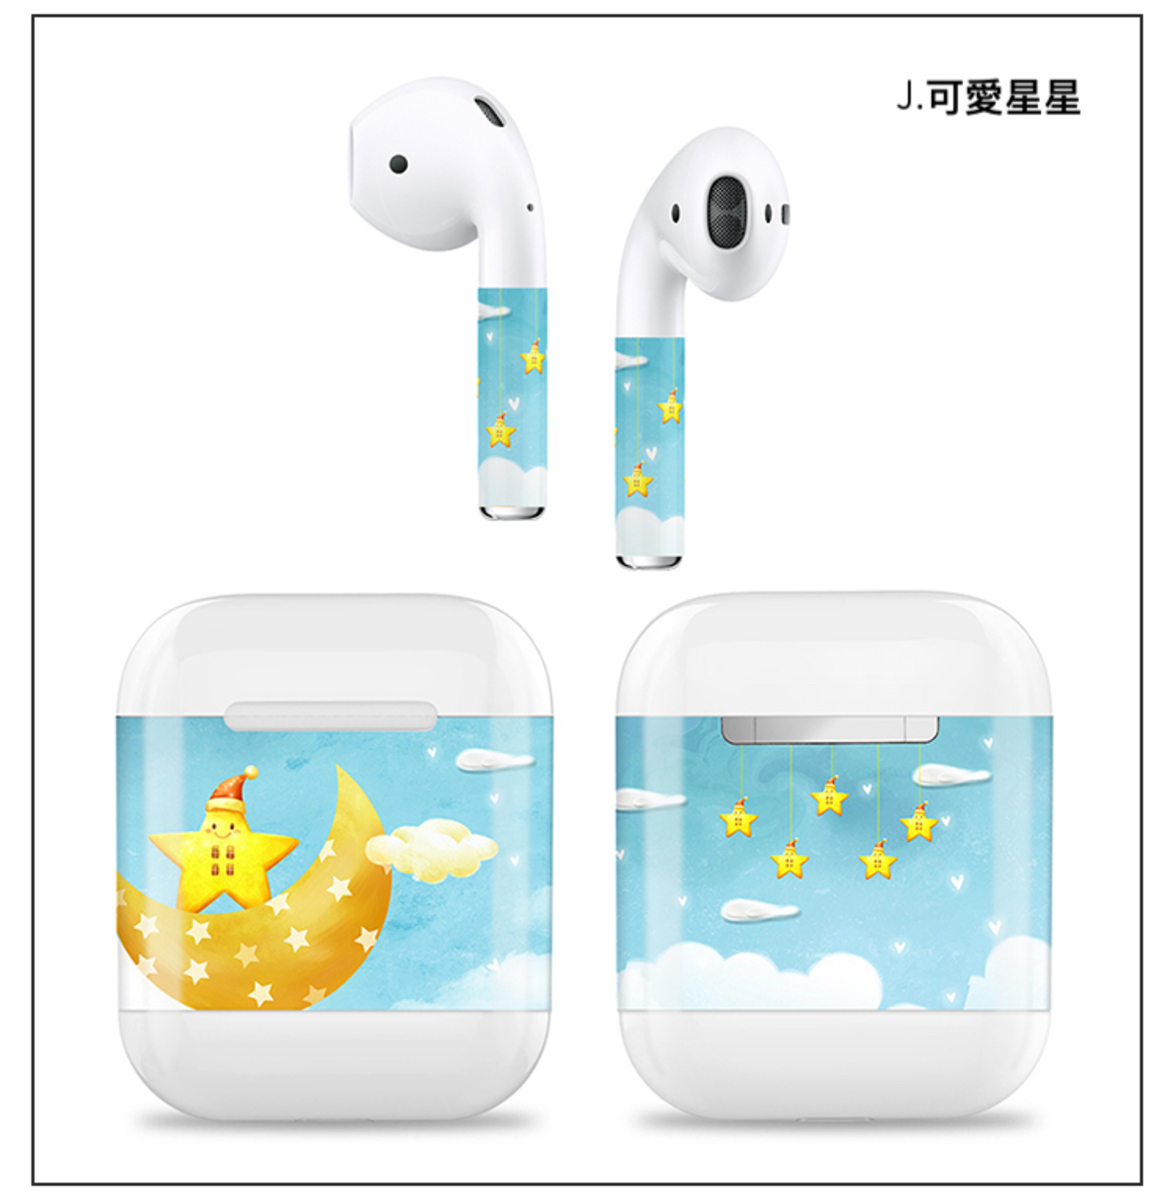 AhaStyle Decal Skins Sticker for Apple Airpods Style J